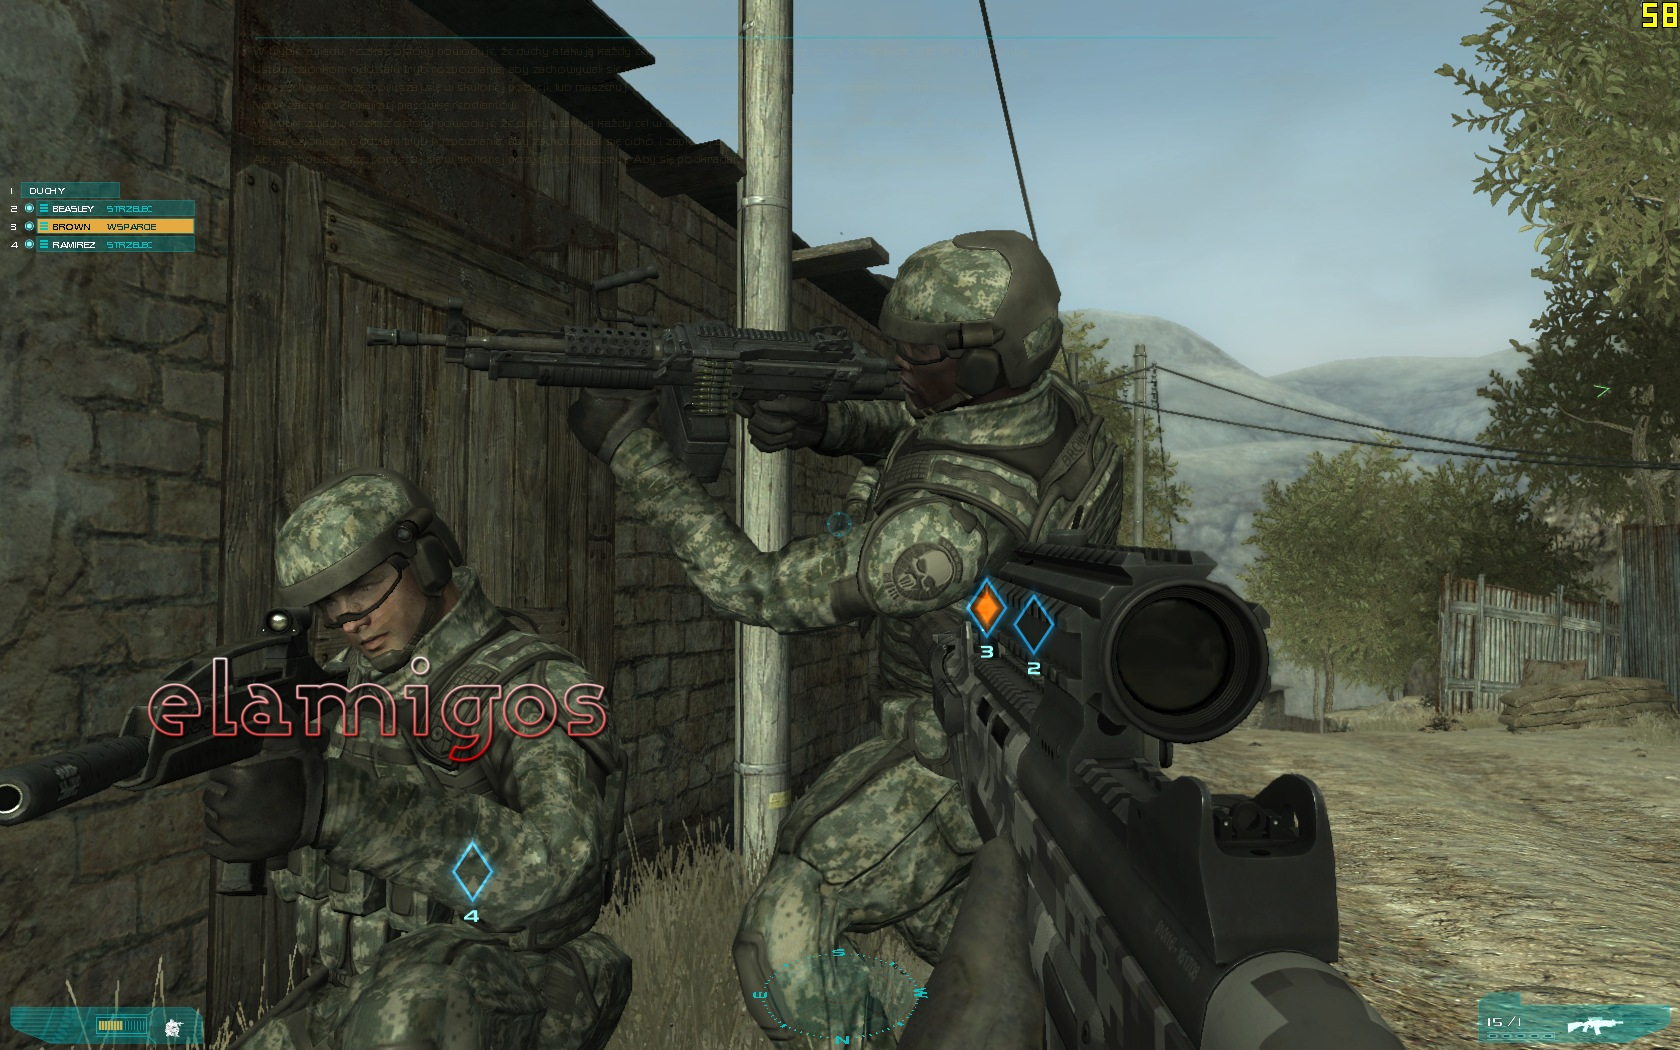 how to change language in ghost recon advanced warfighter 1